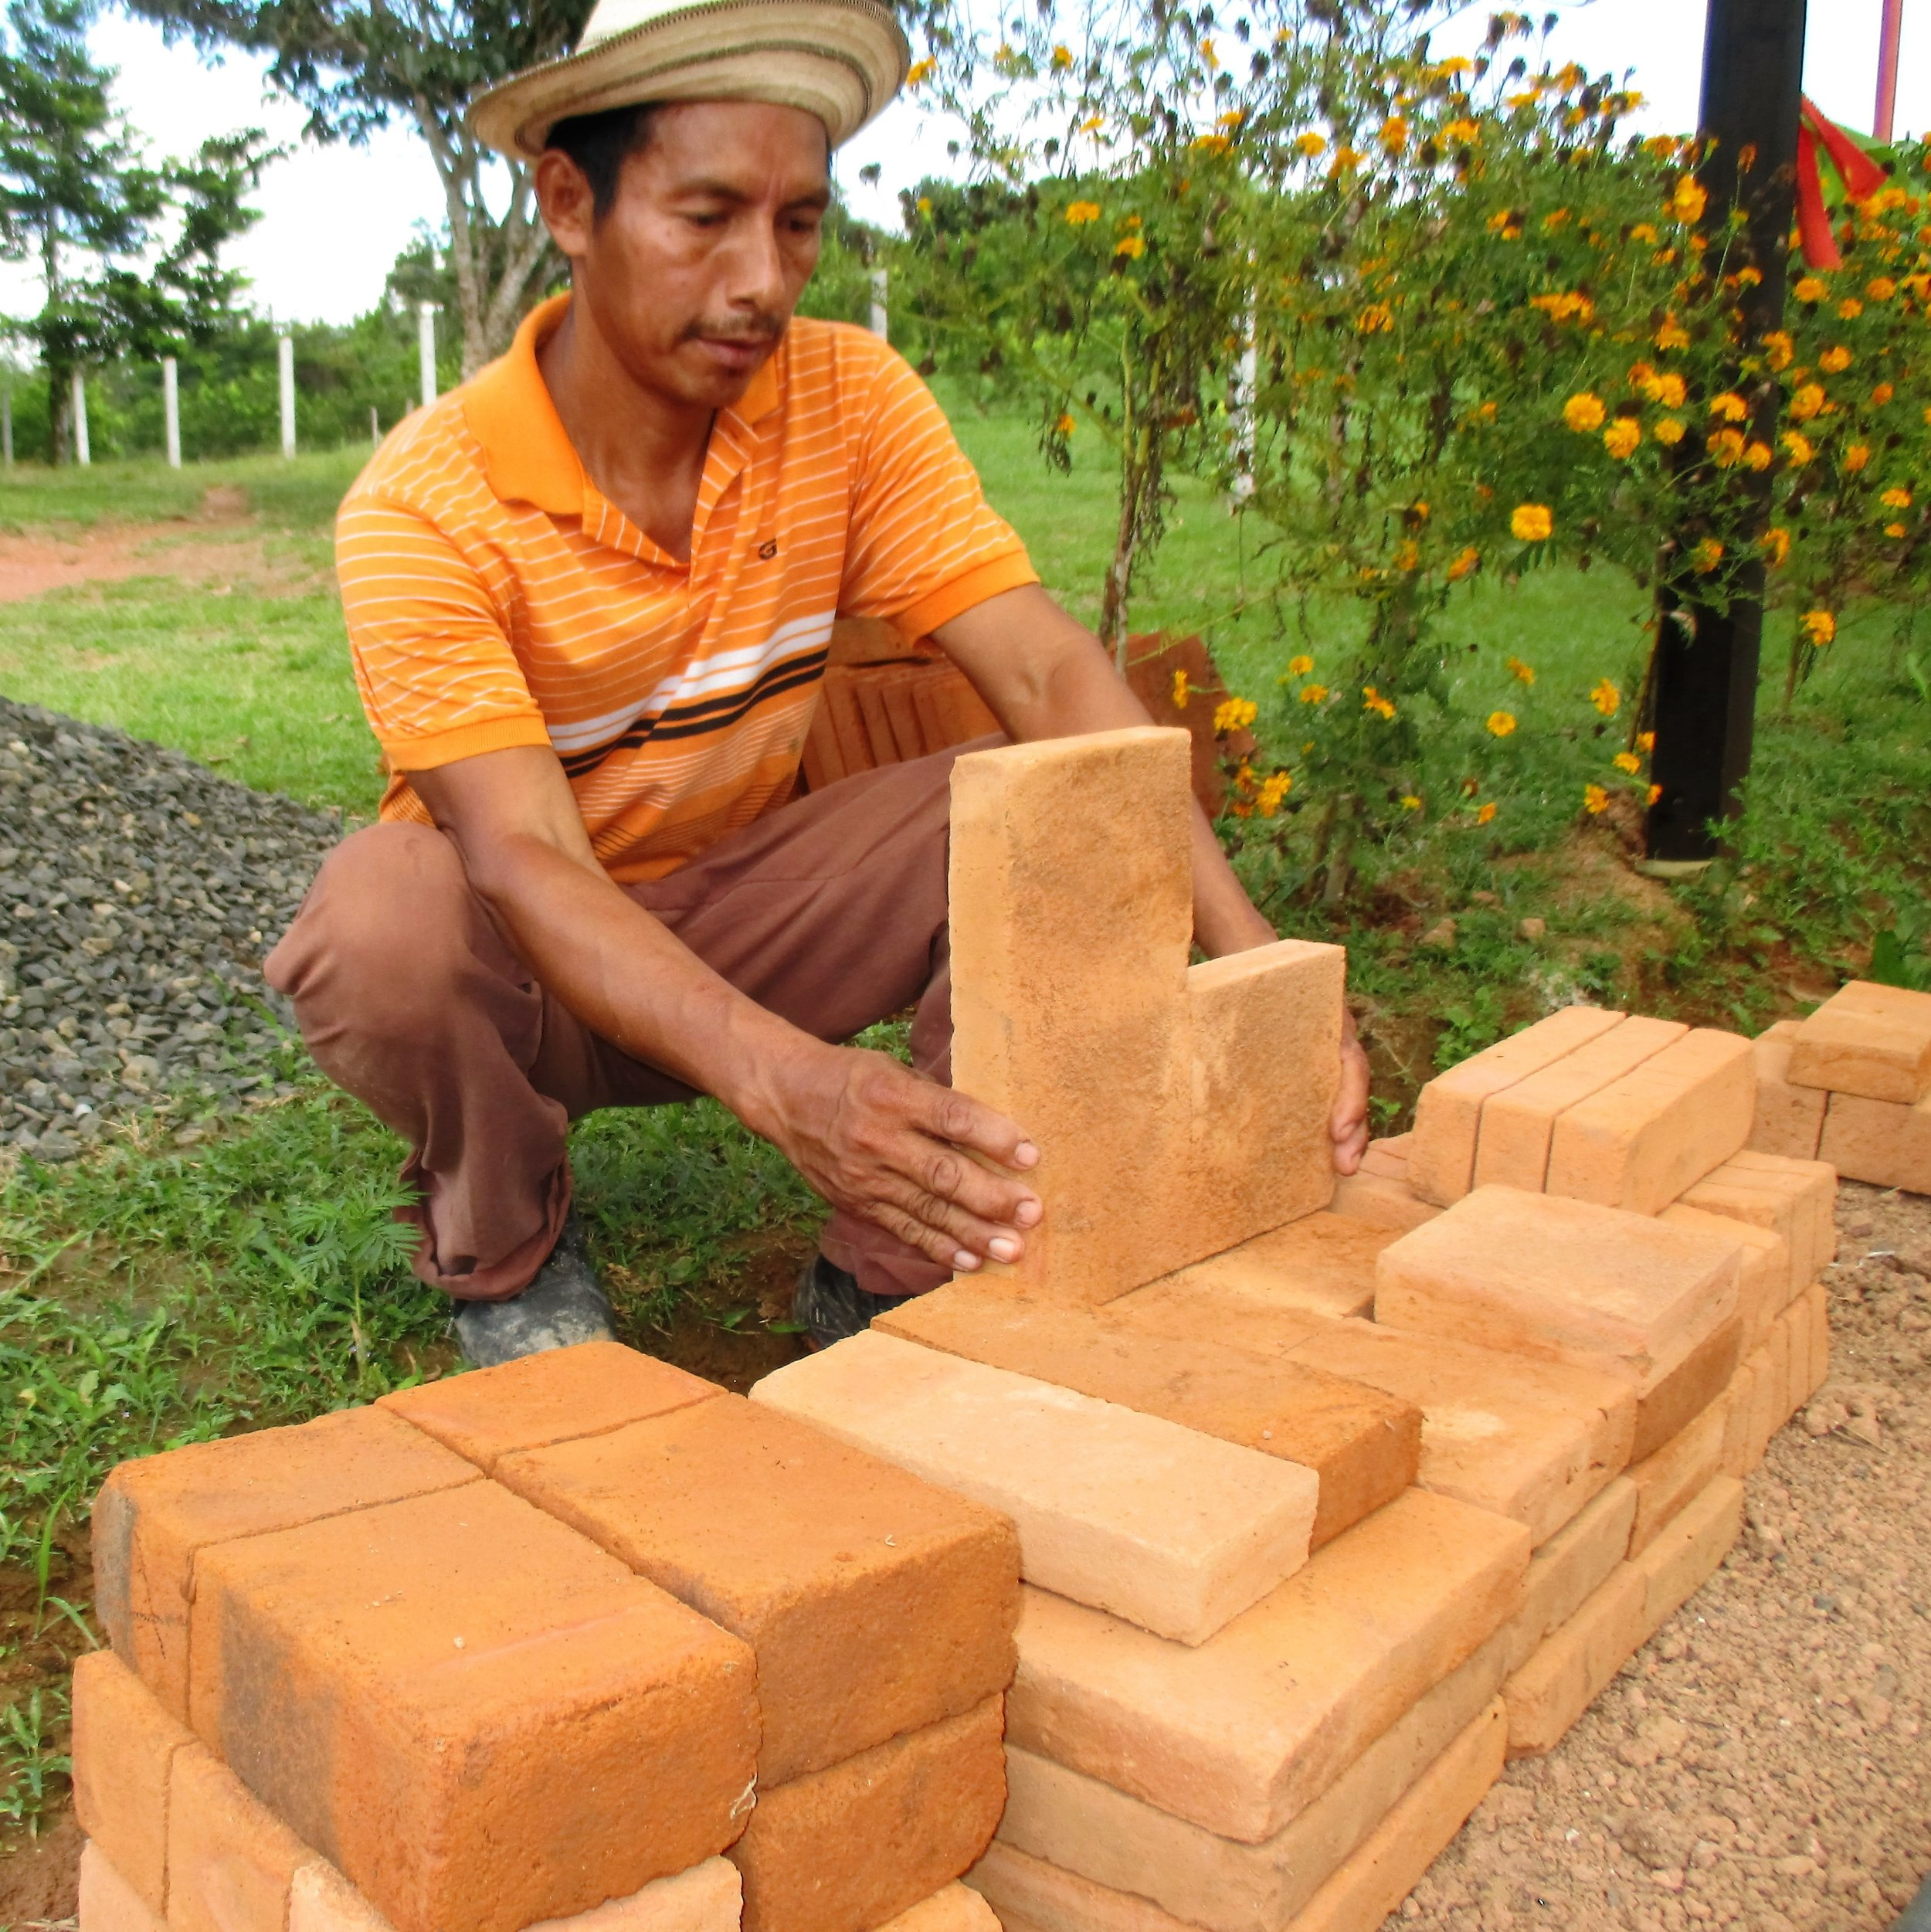 Rafael prepares materials for a new wood-conserving stove. - photo by Daysbeth   López